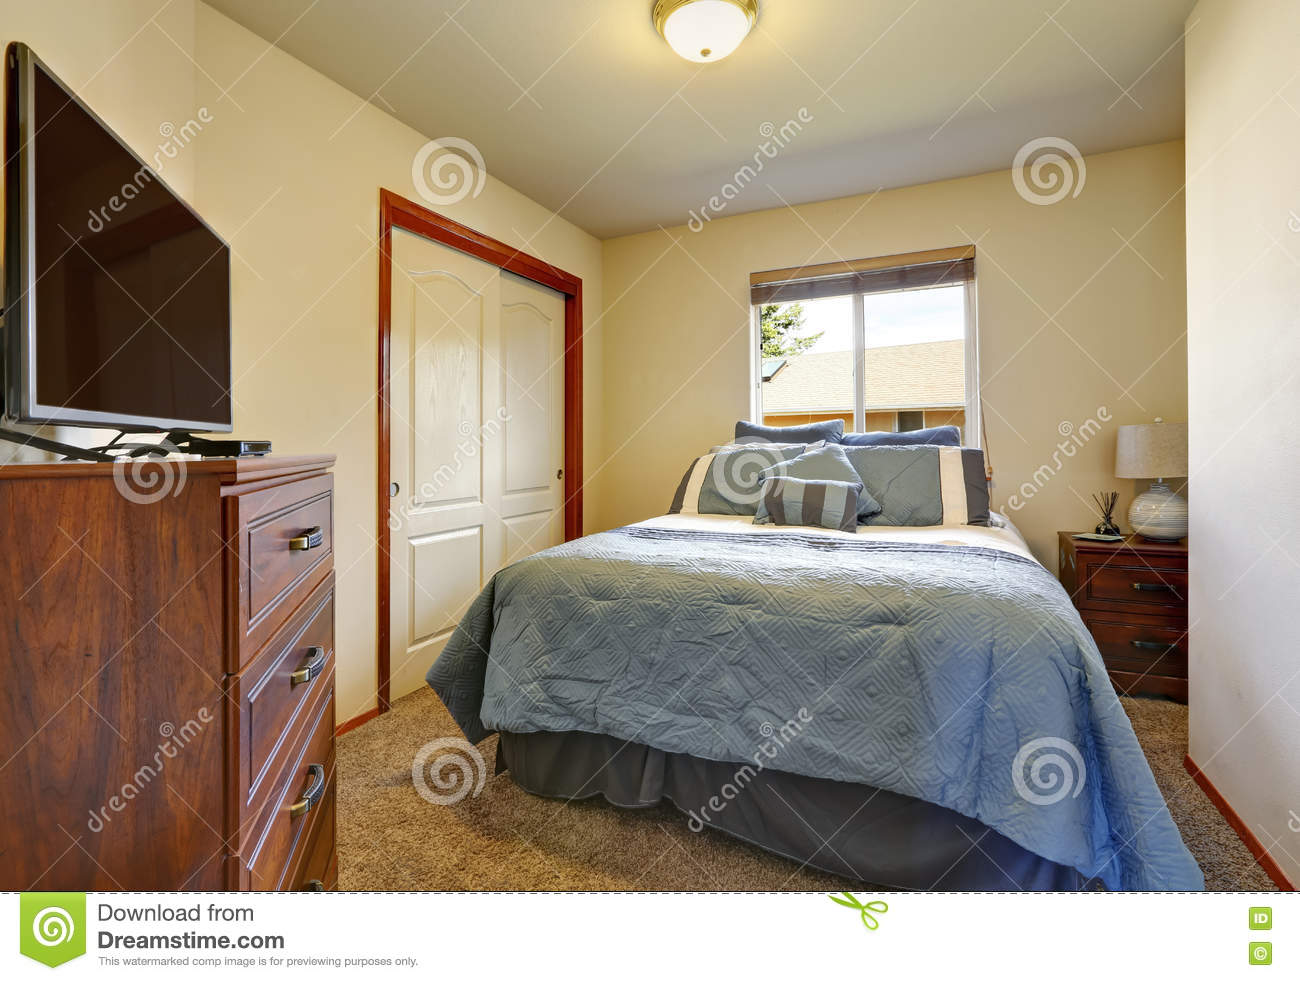 Large Blue Bed, Cabinet With TV, Closet In Small Bedroom Stock Photo ...